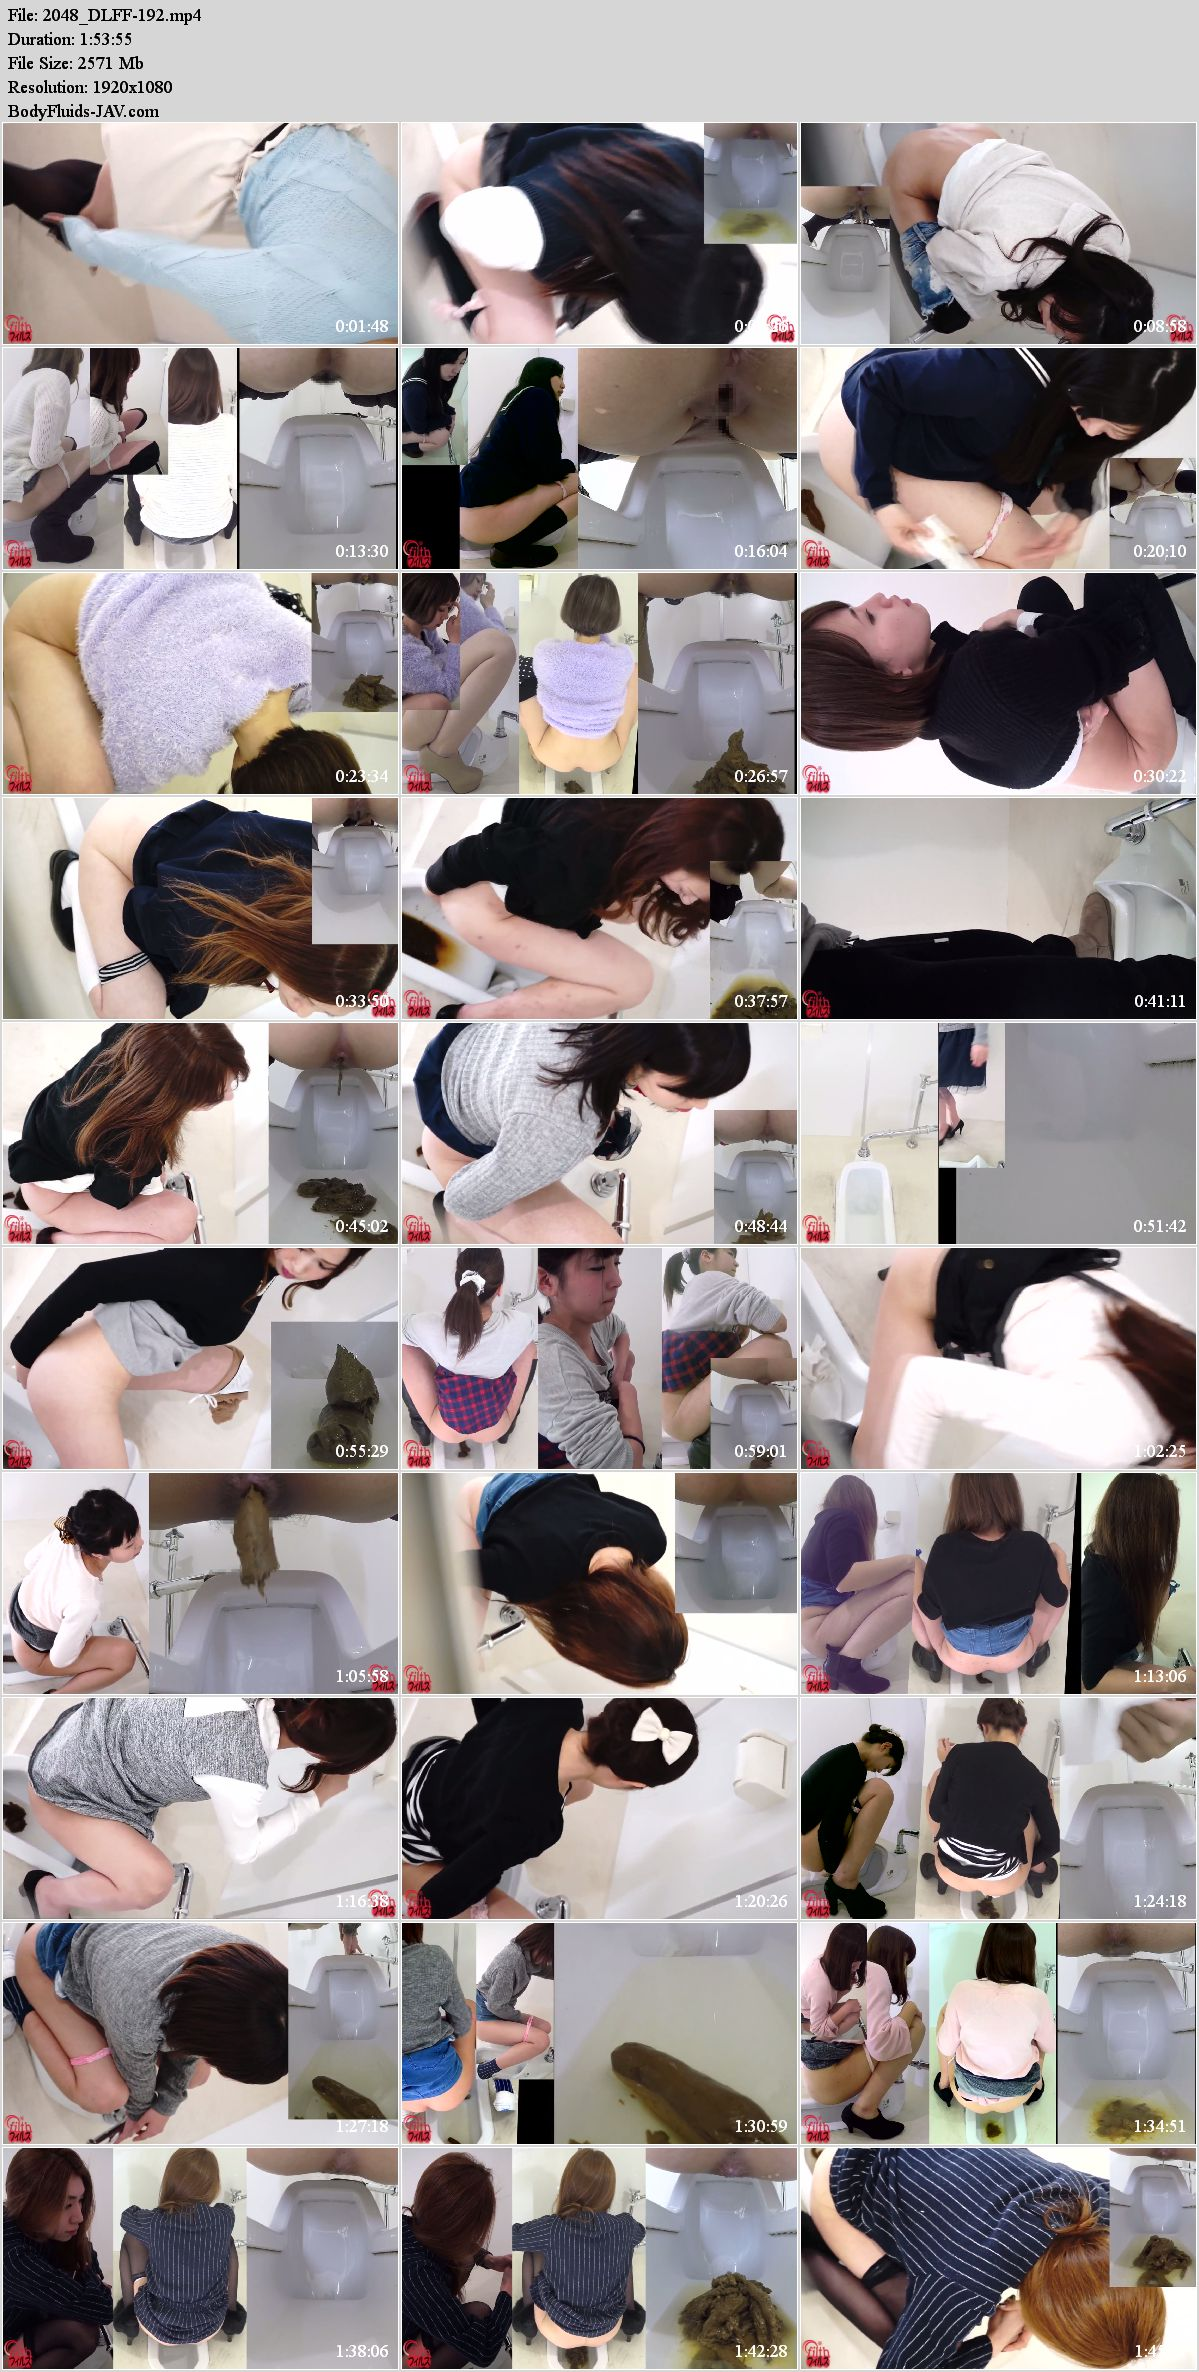 FF-192 Girls saw camera and shy during defecation. (HD 1080p)